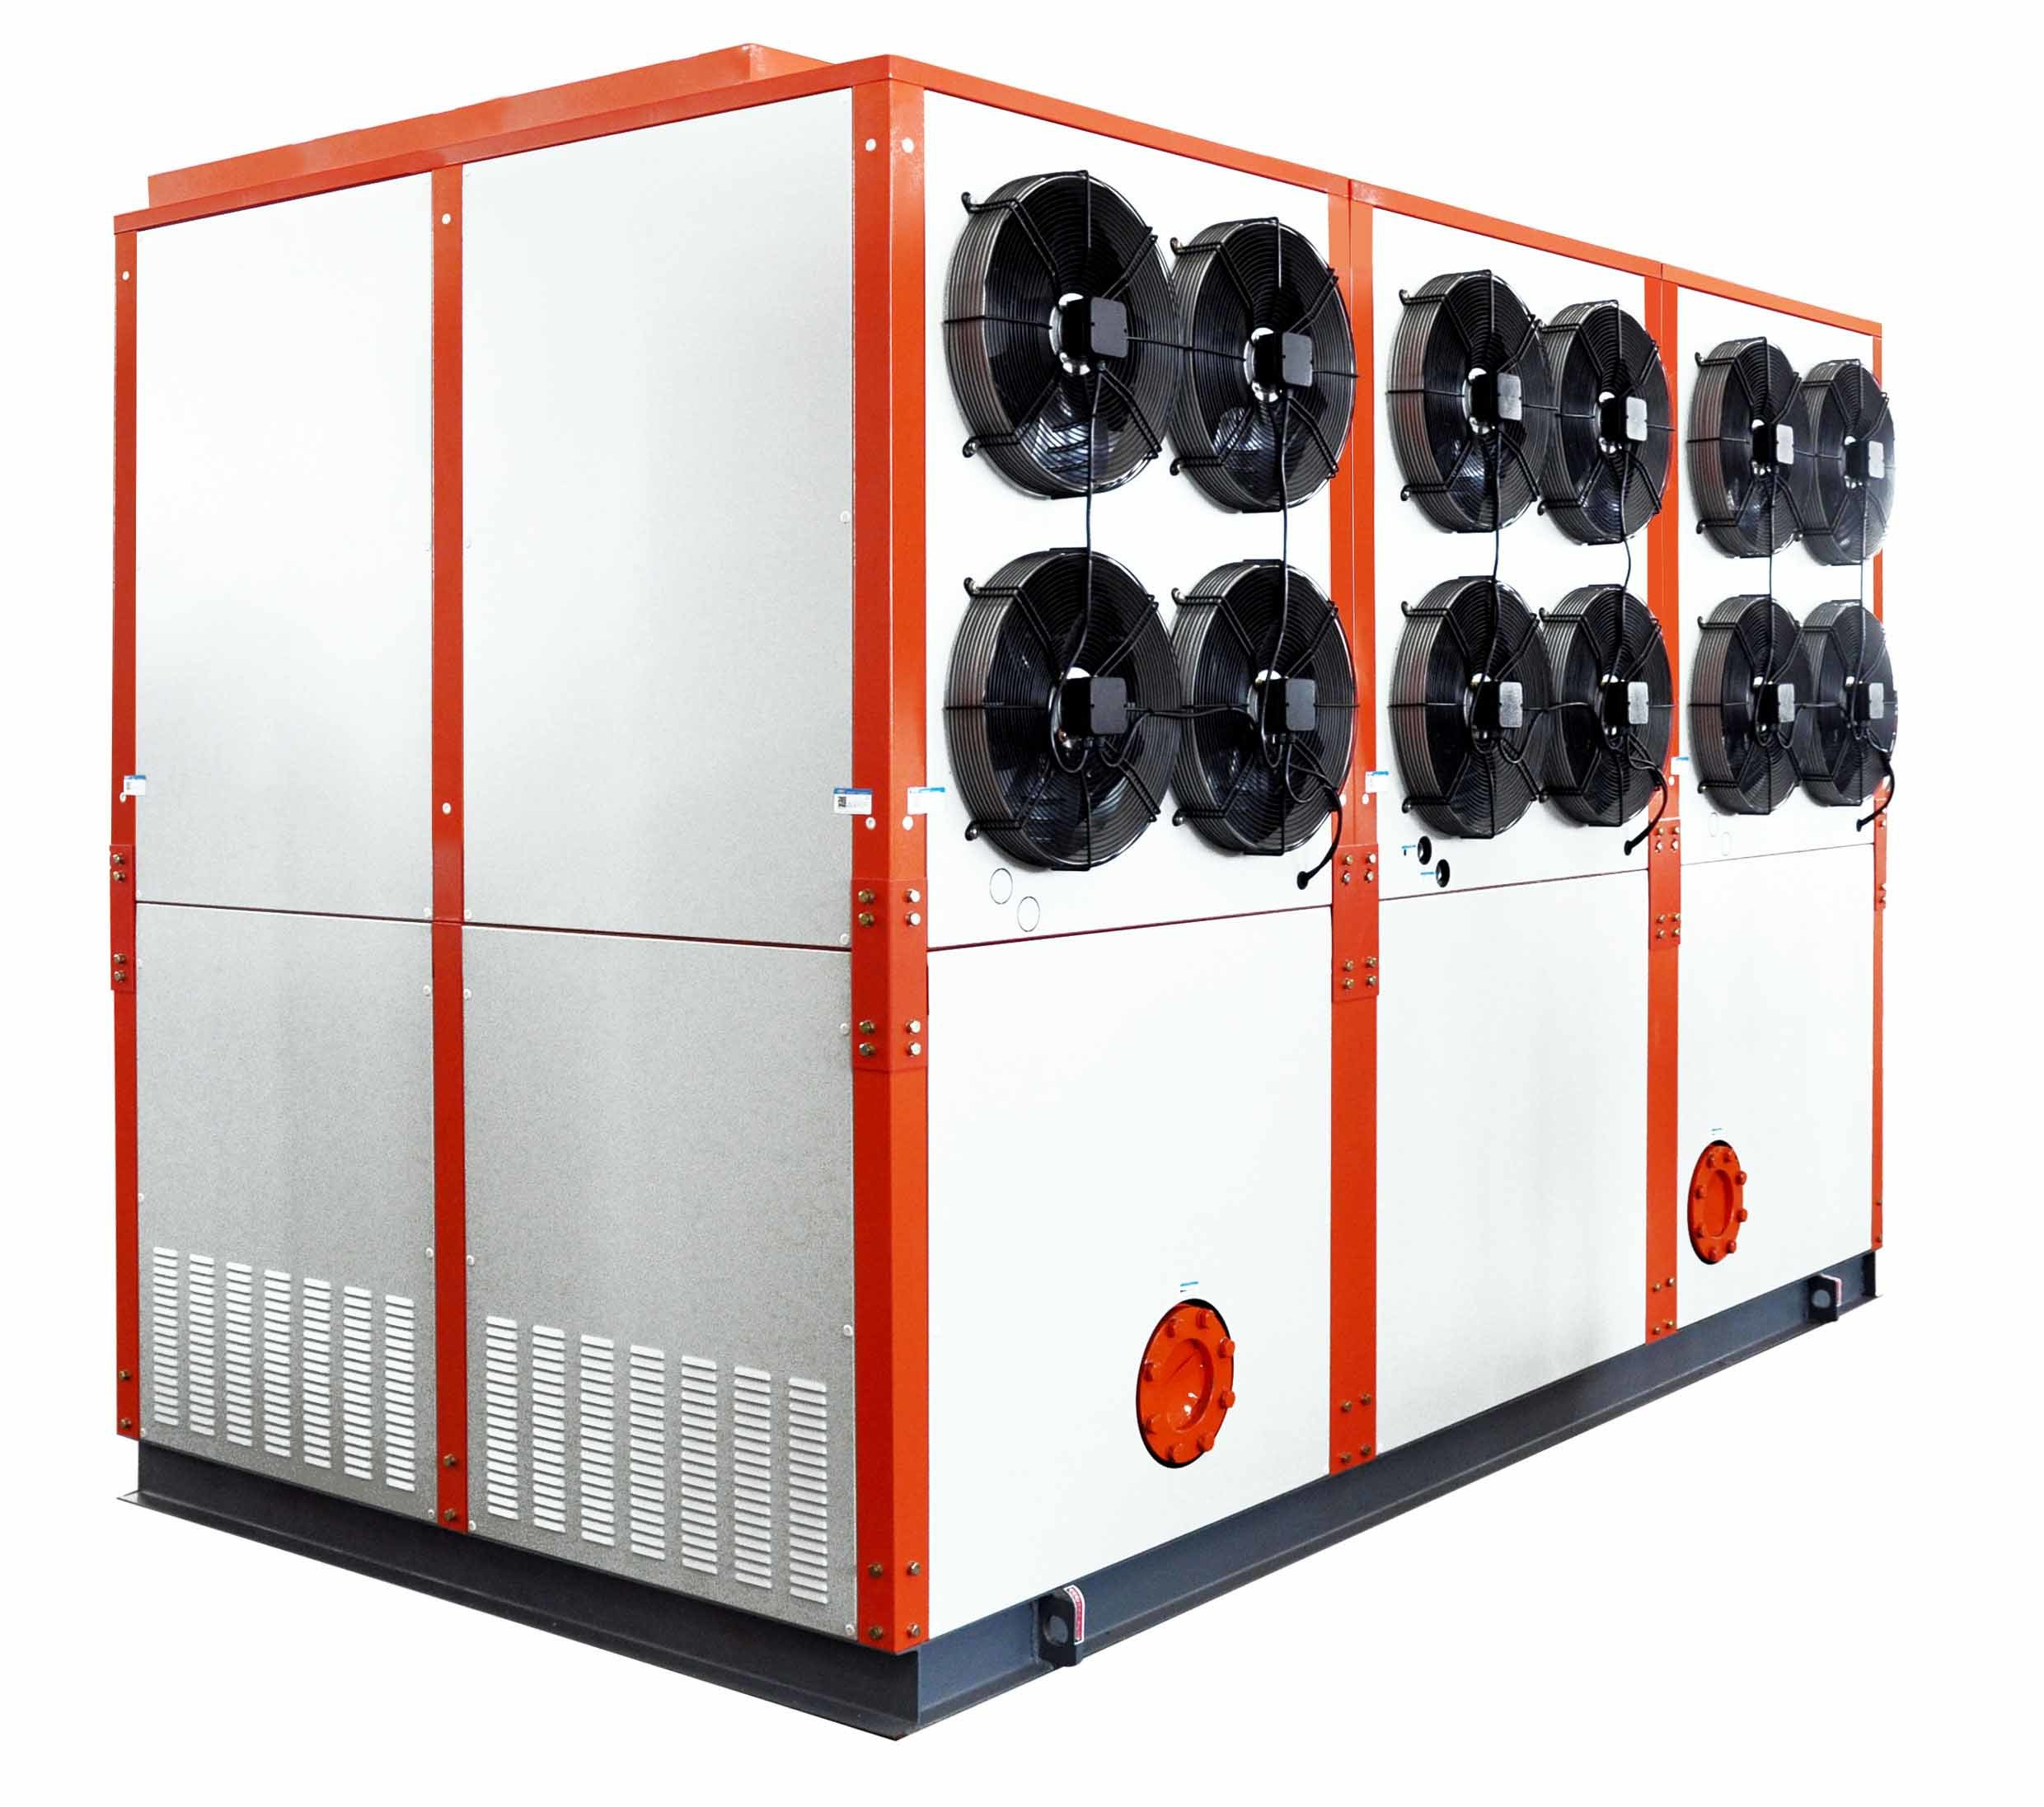 290kw Cooling Capacity Customized Intergrated Industrial Evaporative Cooled Pharmaceutical HVAC Water Chiller